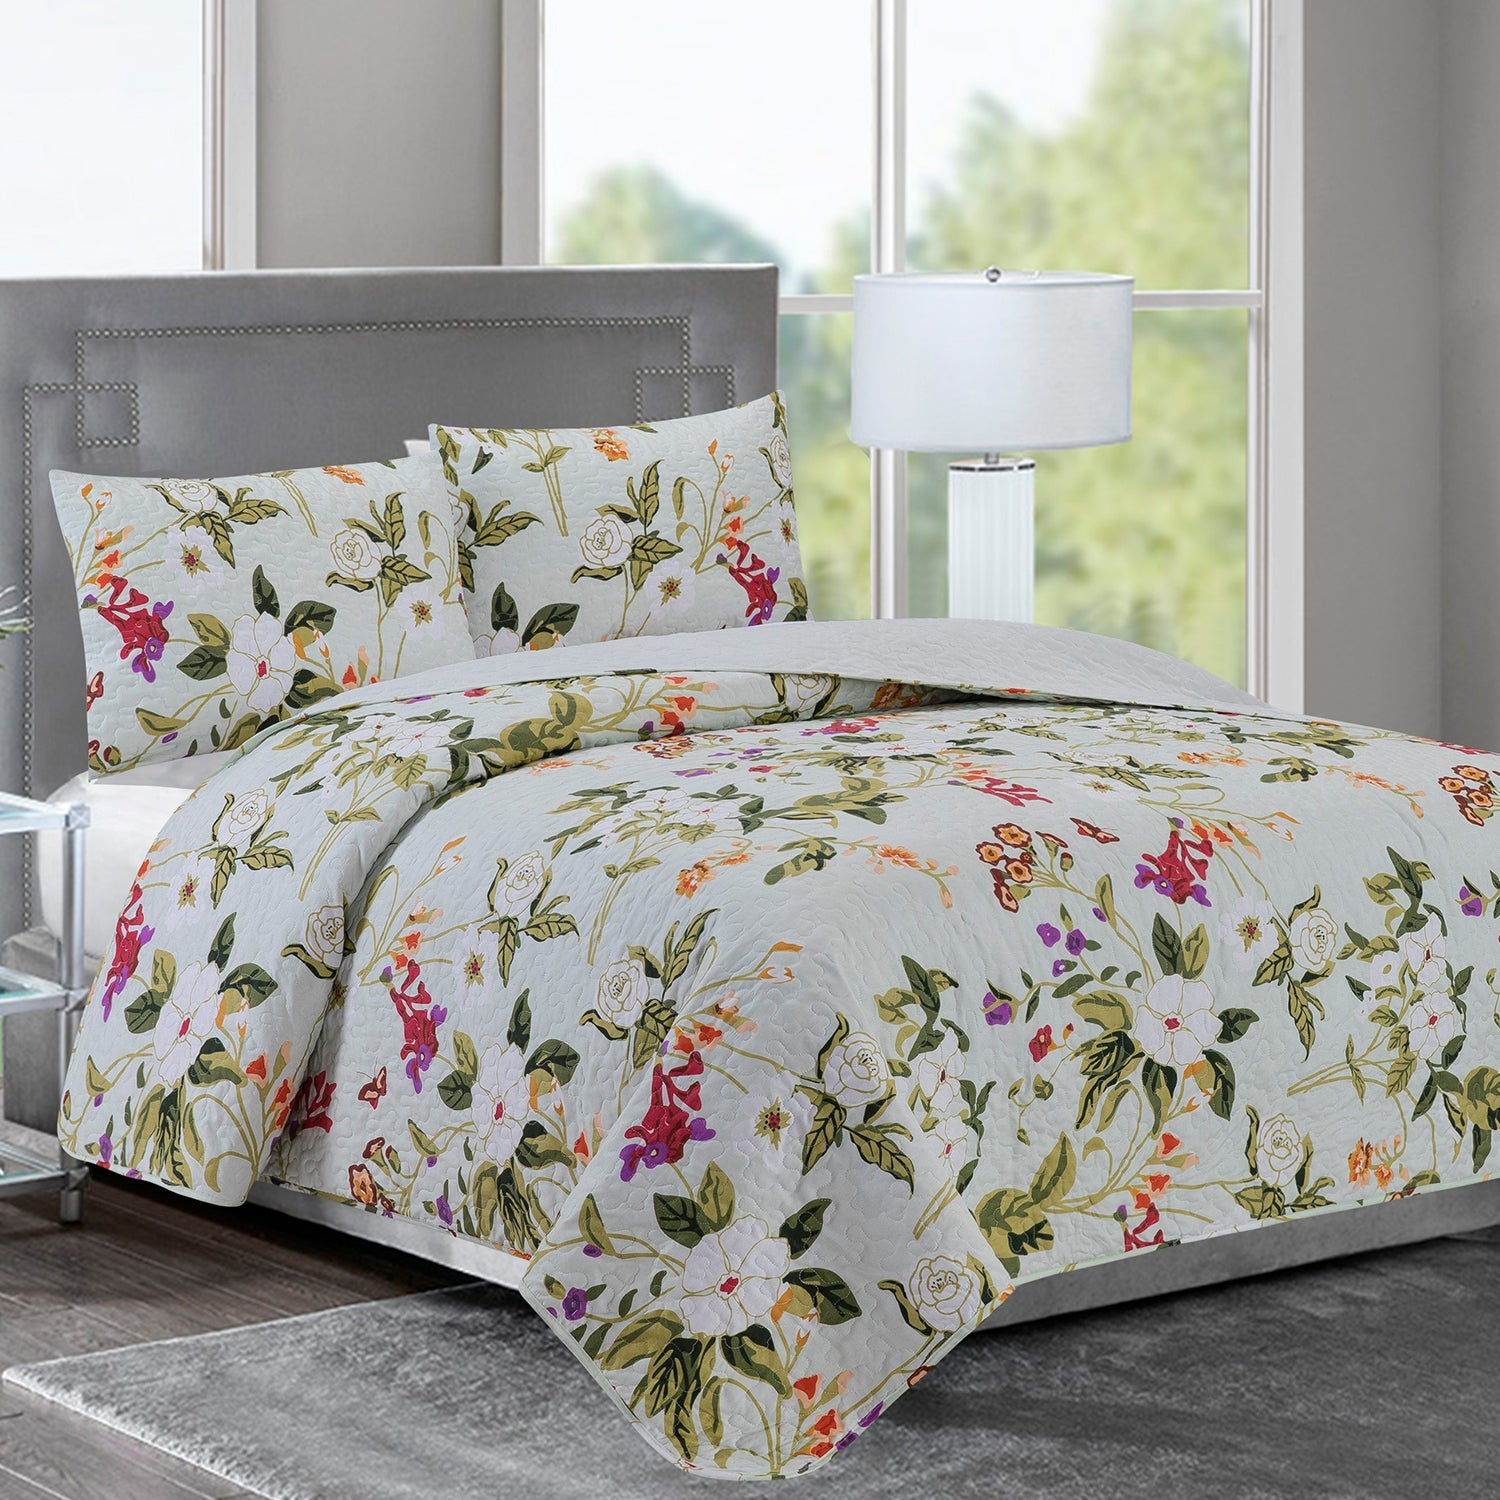 Elisa - 3 Piece Reversible Quilt Set - Off White & Green Floral Bliss - Glory Home Design